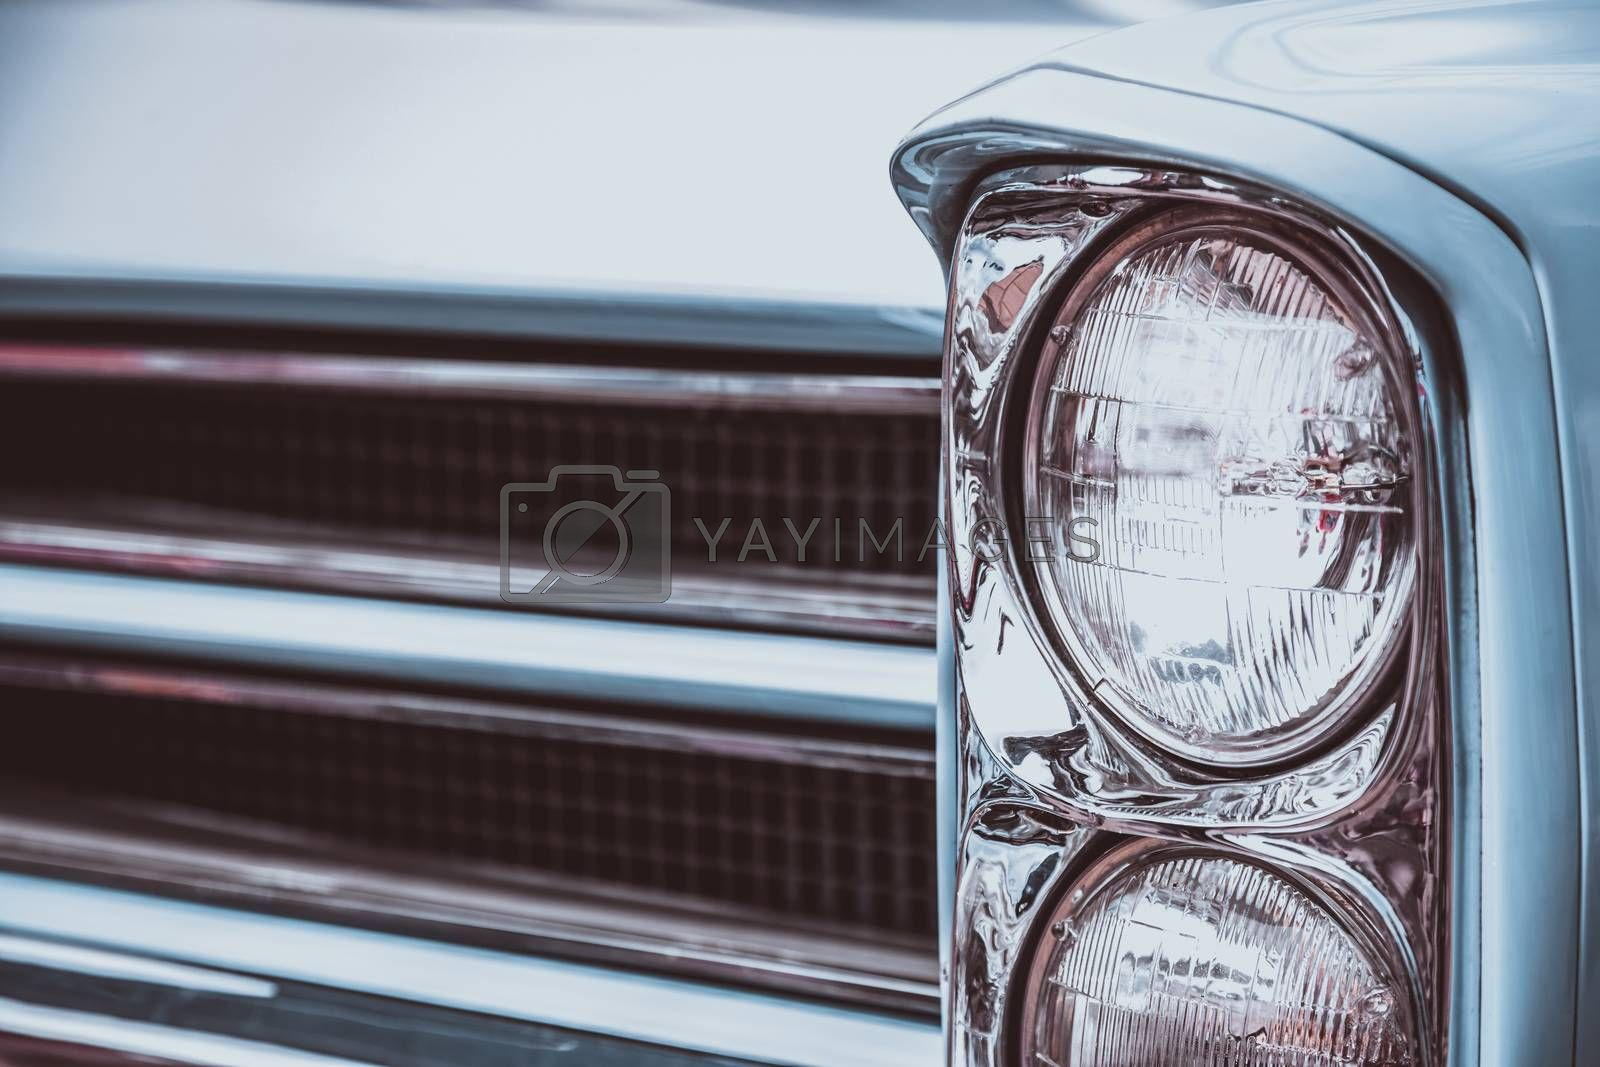 Front lights and radiator grill of an old vintage automobile. Processed by vintage or retro effect filter